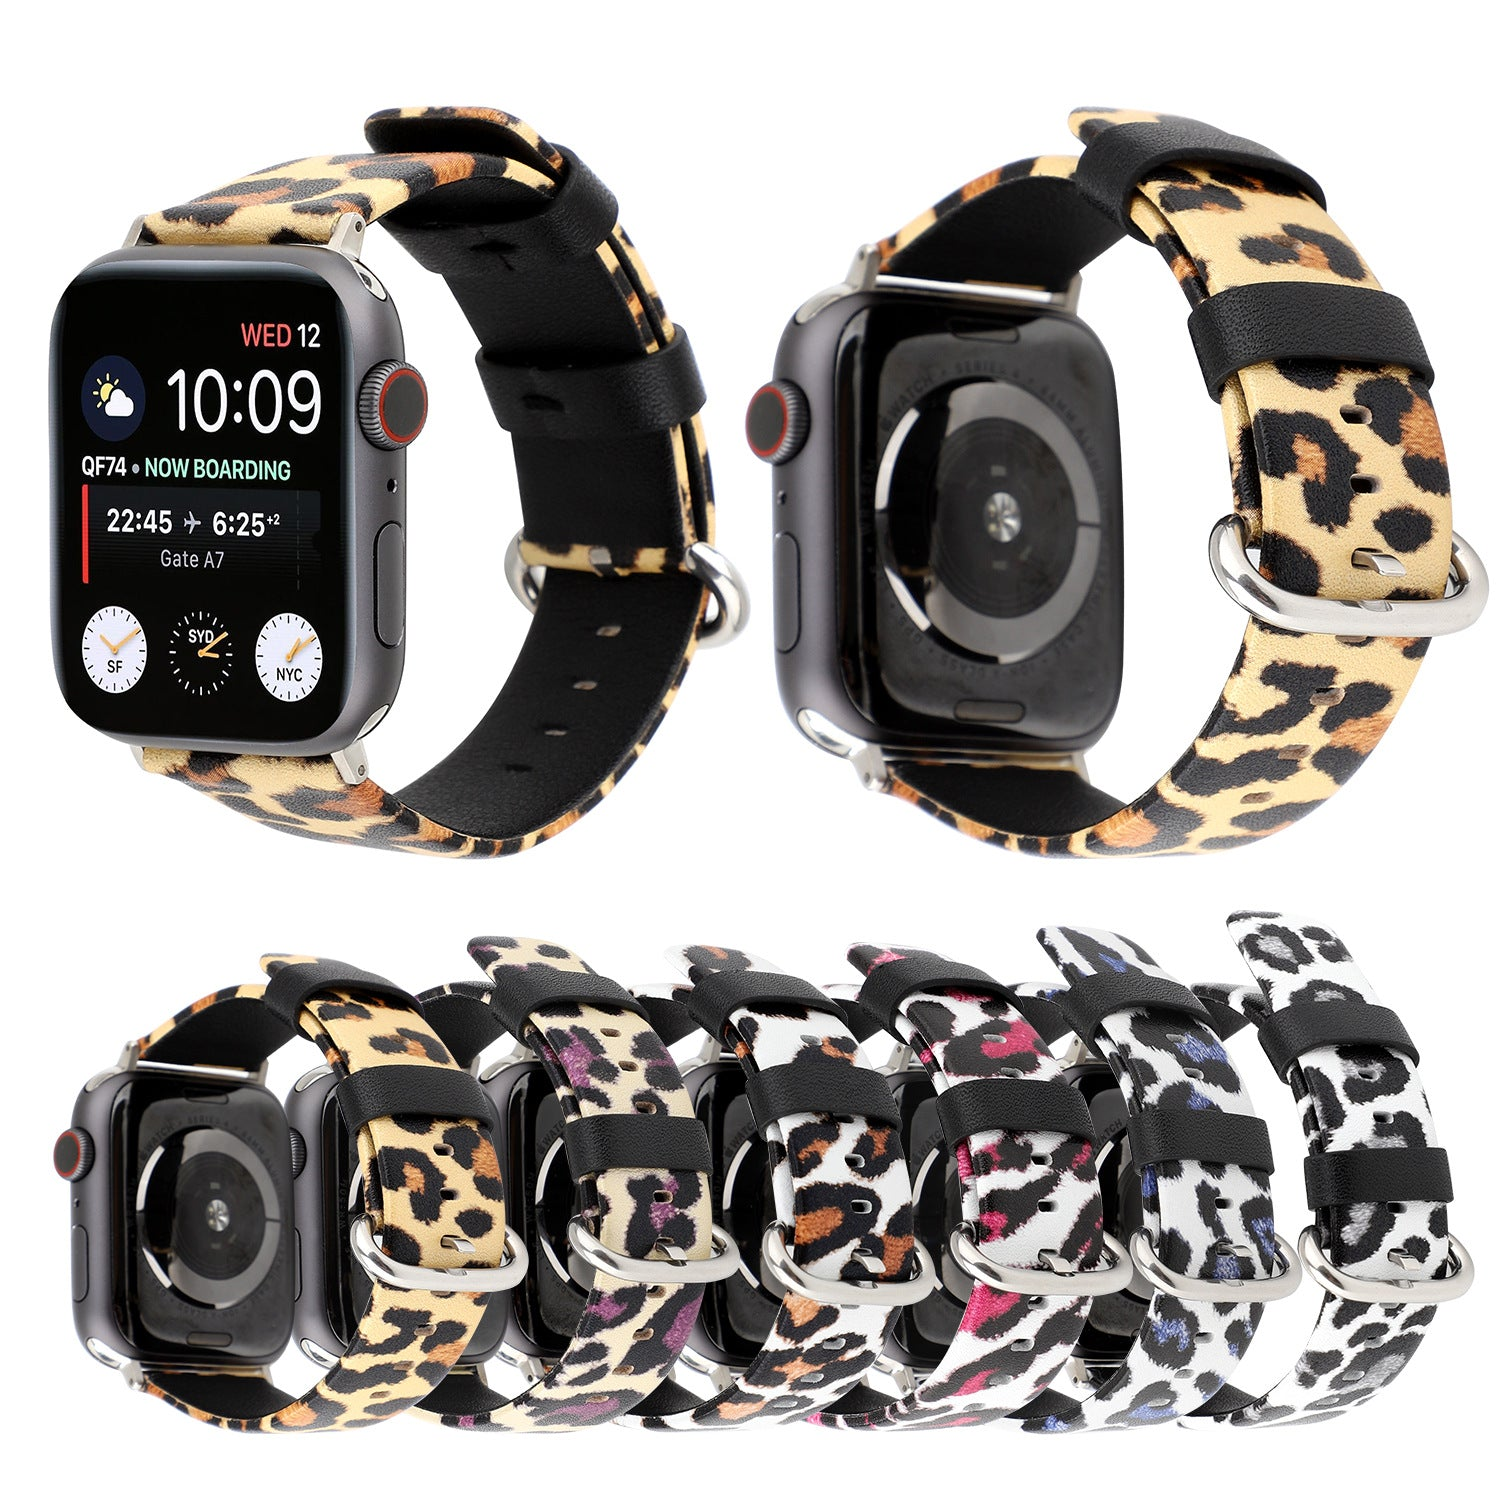 Fashion 6 Colors Leopard Leather Strap For Apple Watch Series 1,2,3,4 -  - TomorrowSummer